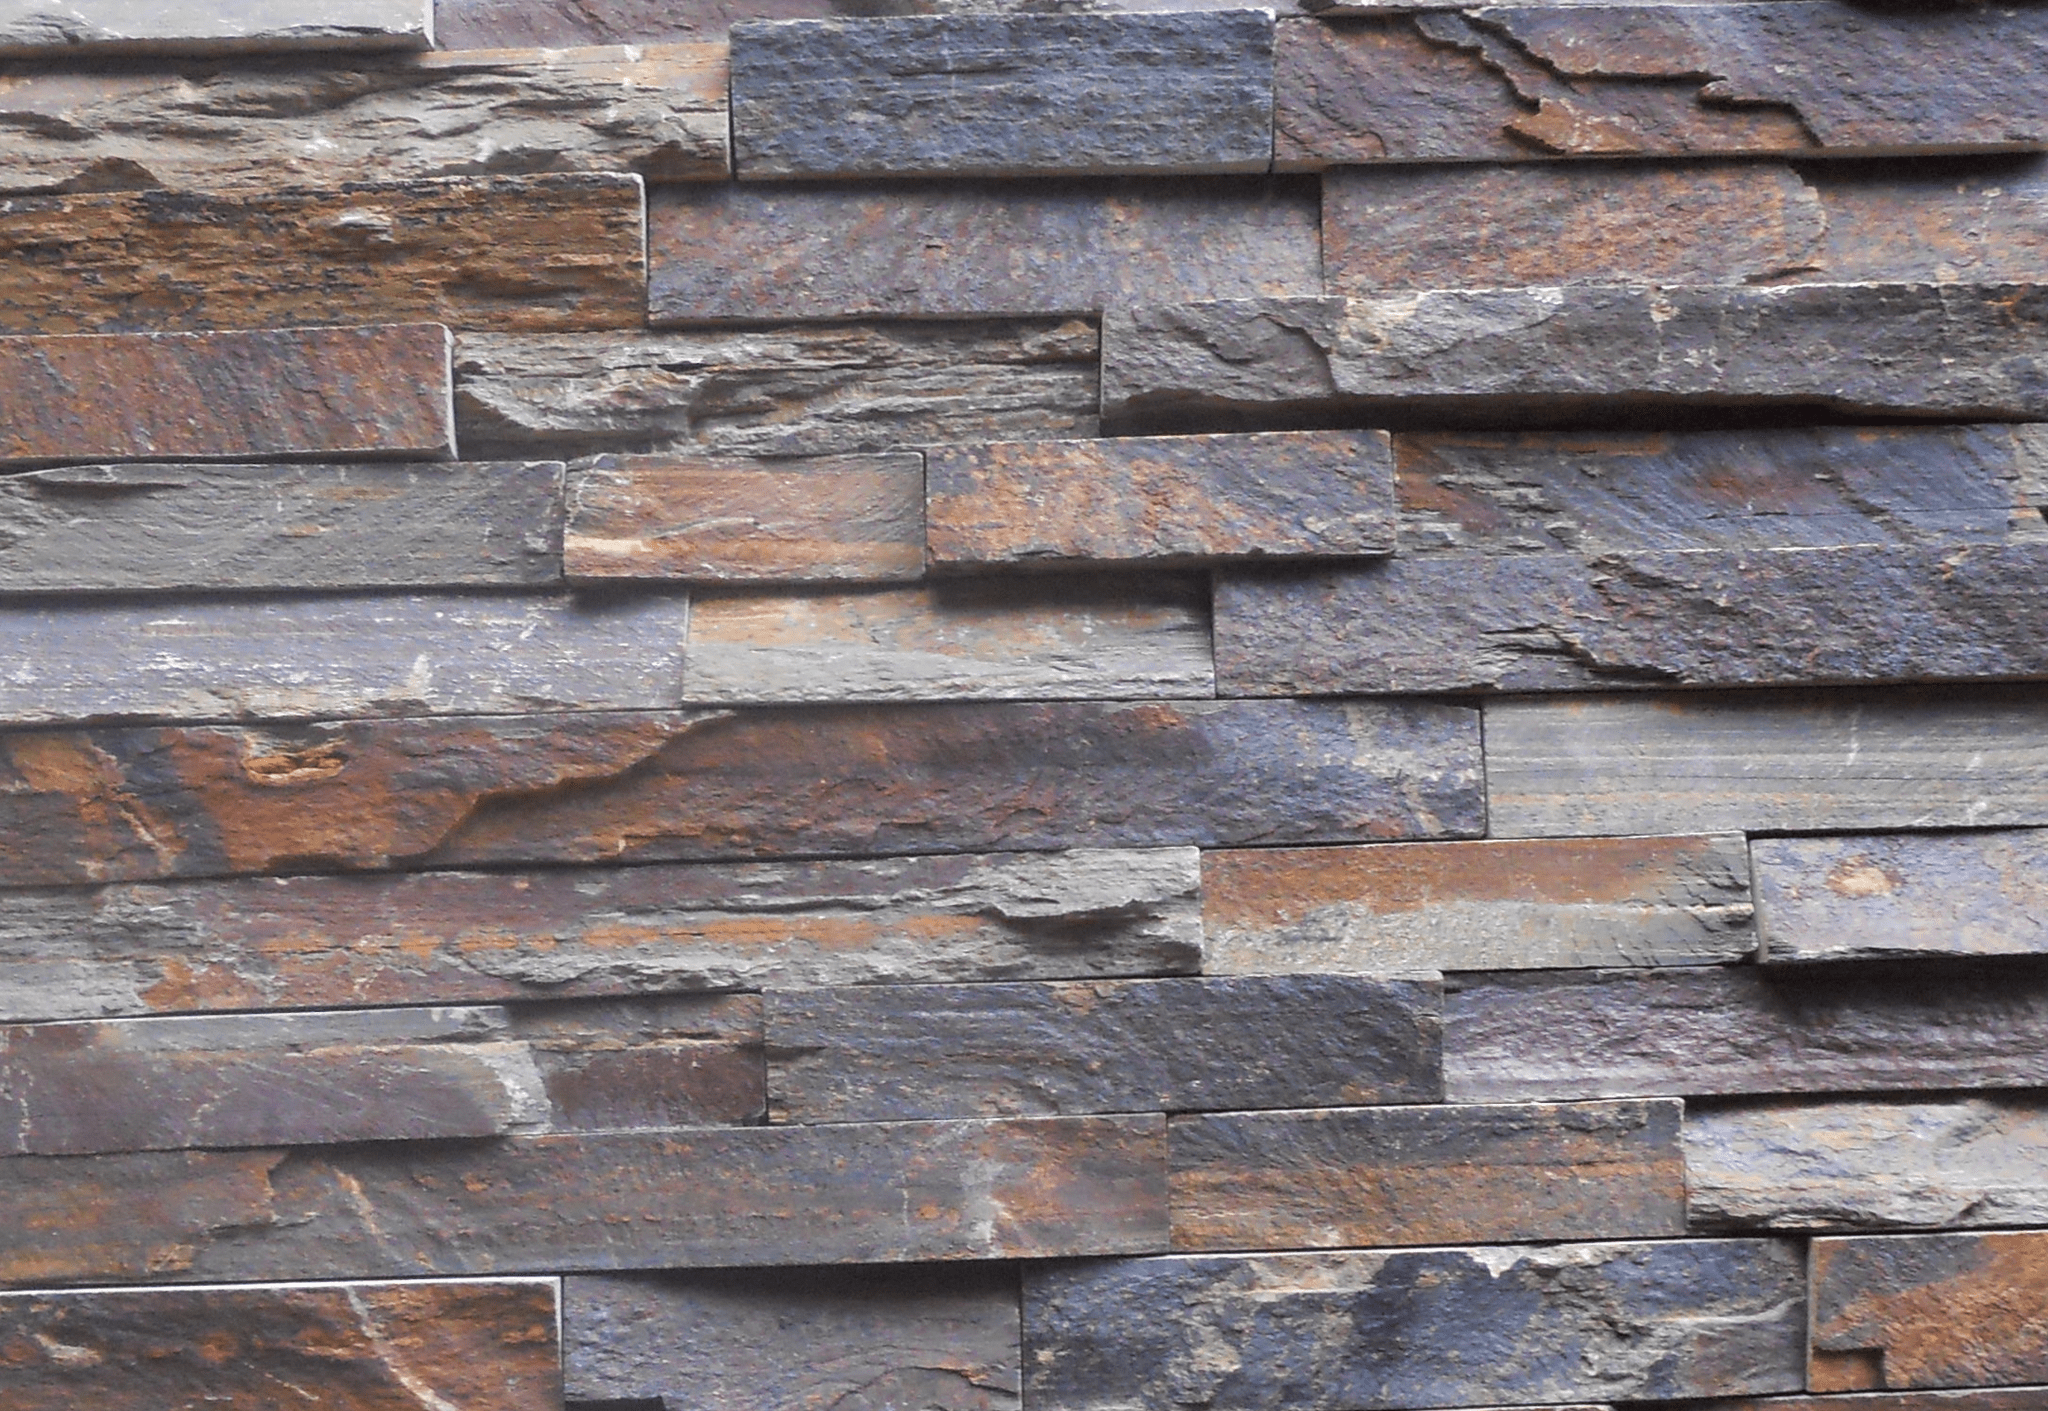 Shadow Mountain - Slate cheap stone veneer clearance - Discount Stones wholesale stone veneer, cheap brick veneer, cultured stone for sale